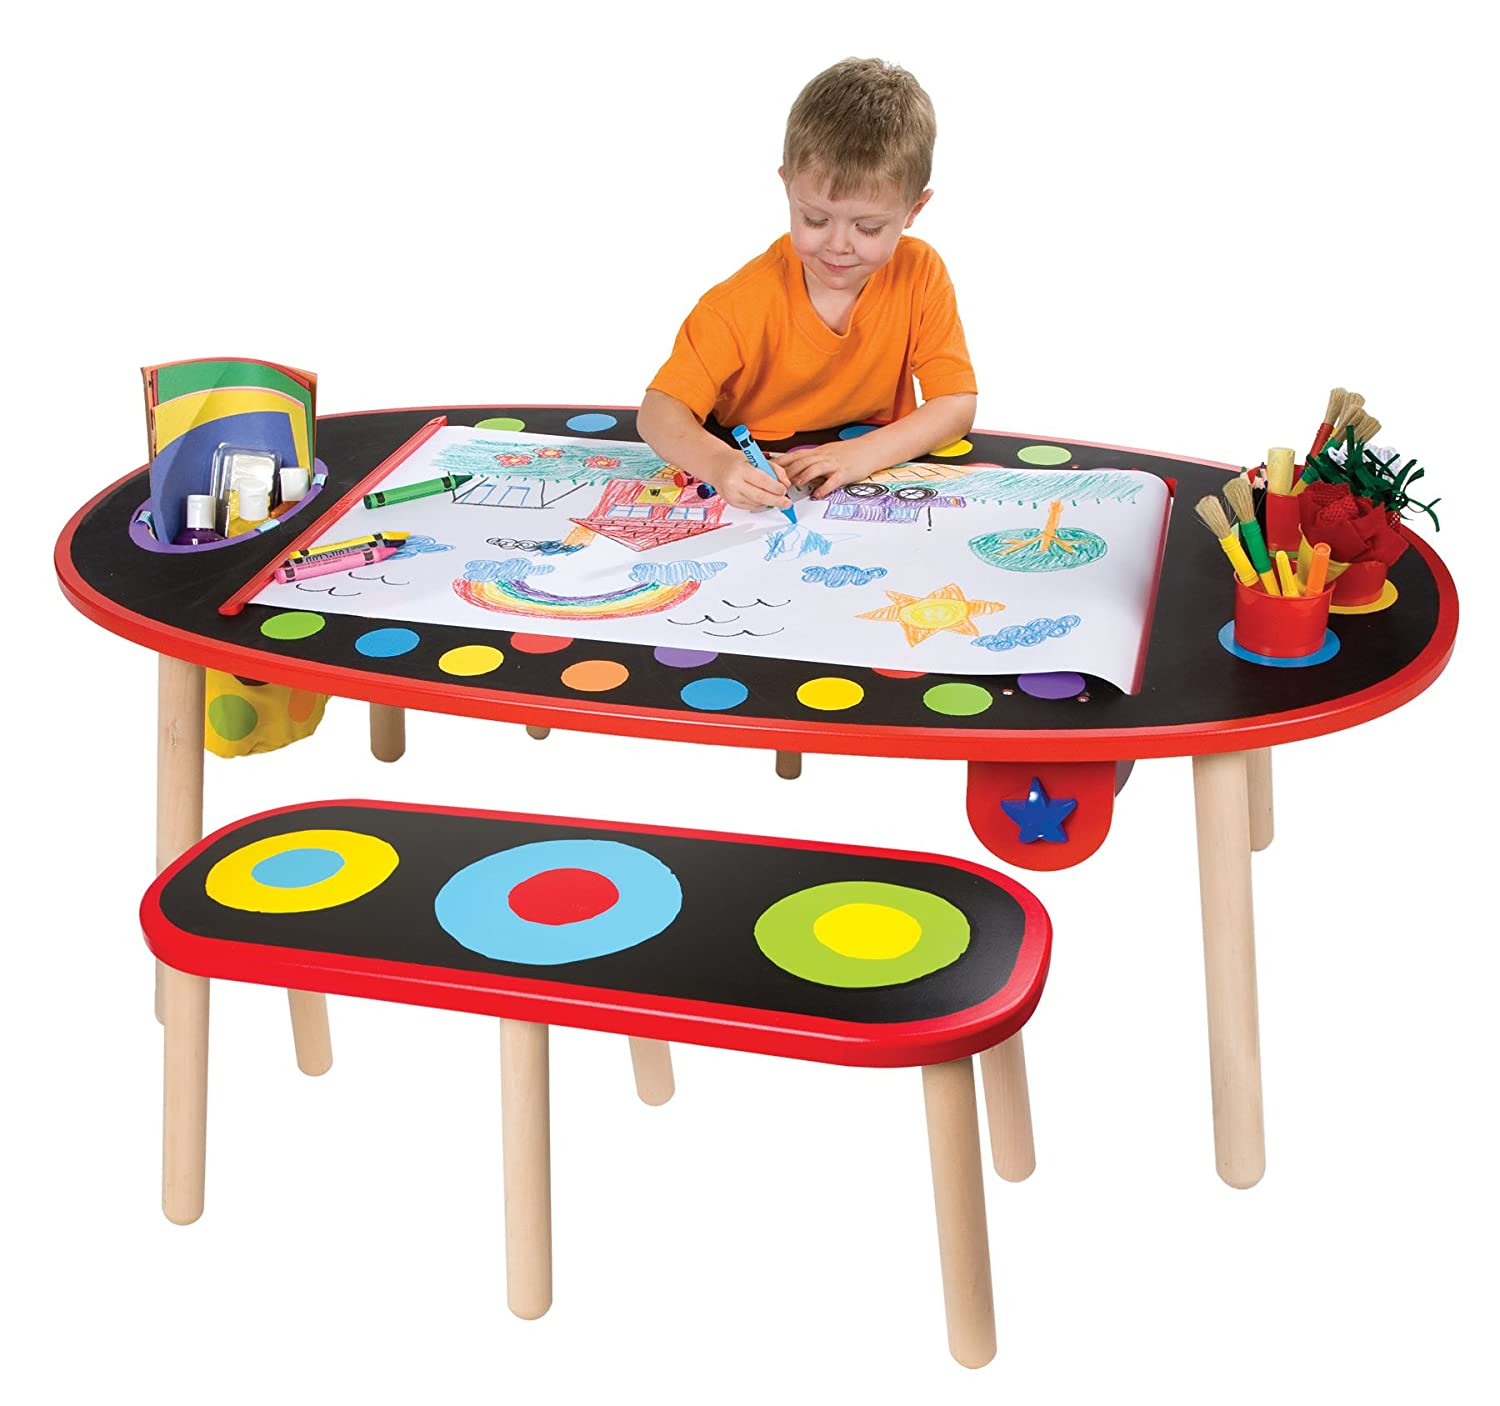 Superior Amazon.com: ALEX Toys Artist Studio Super Art Table With Paper Roll: Toys U0026  Games